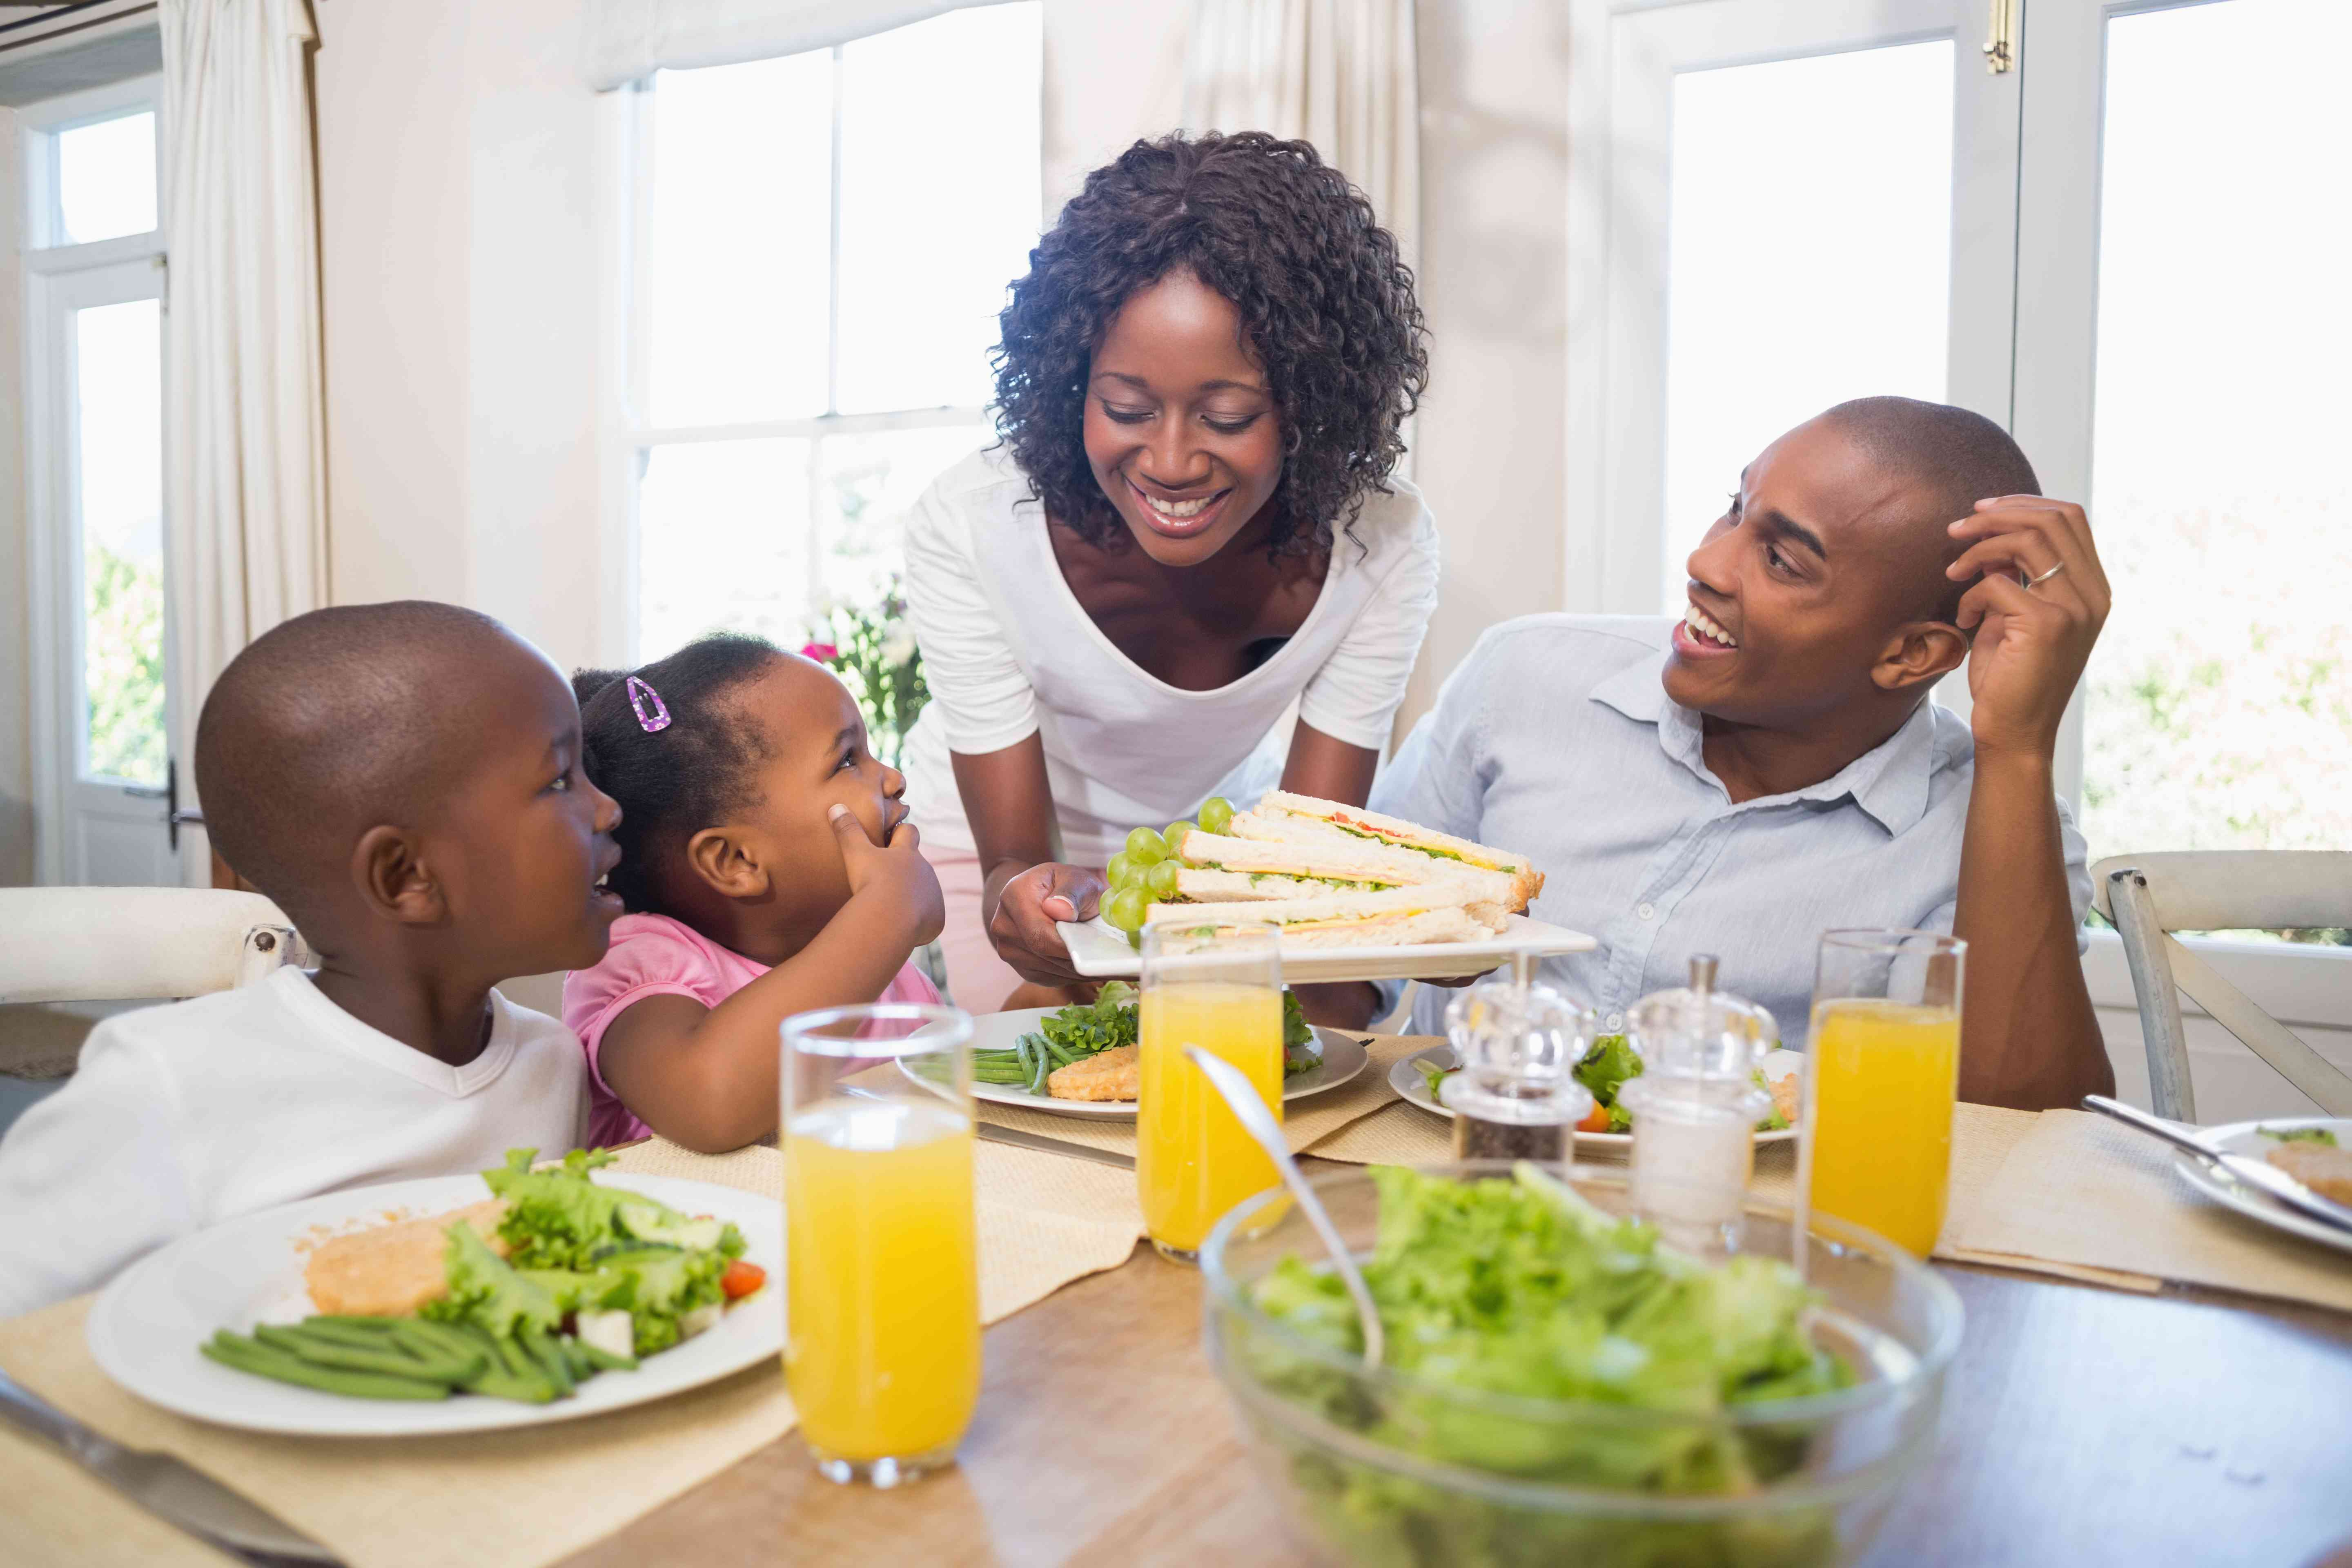 a mom brings food to the dinner table for family